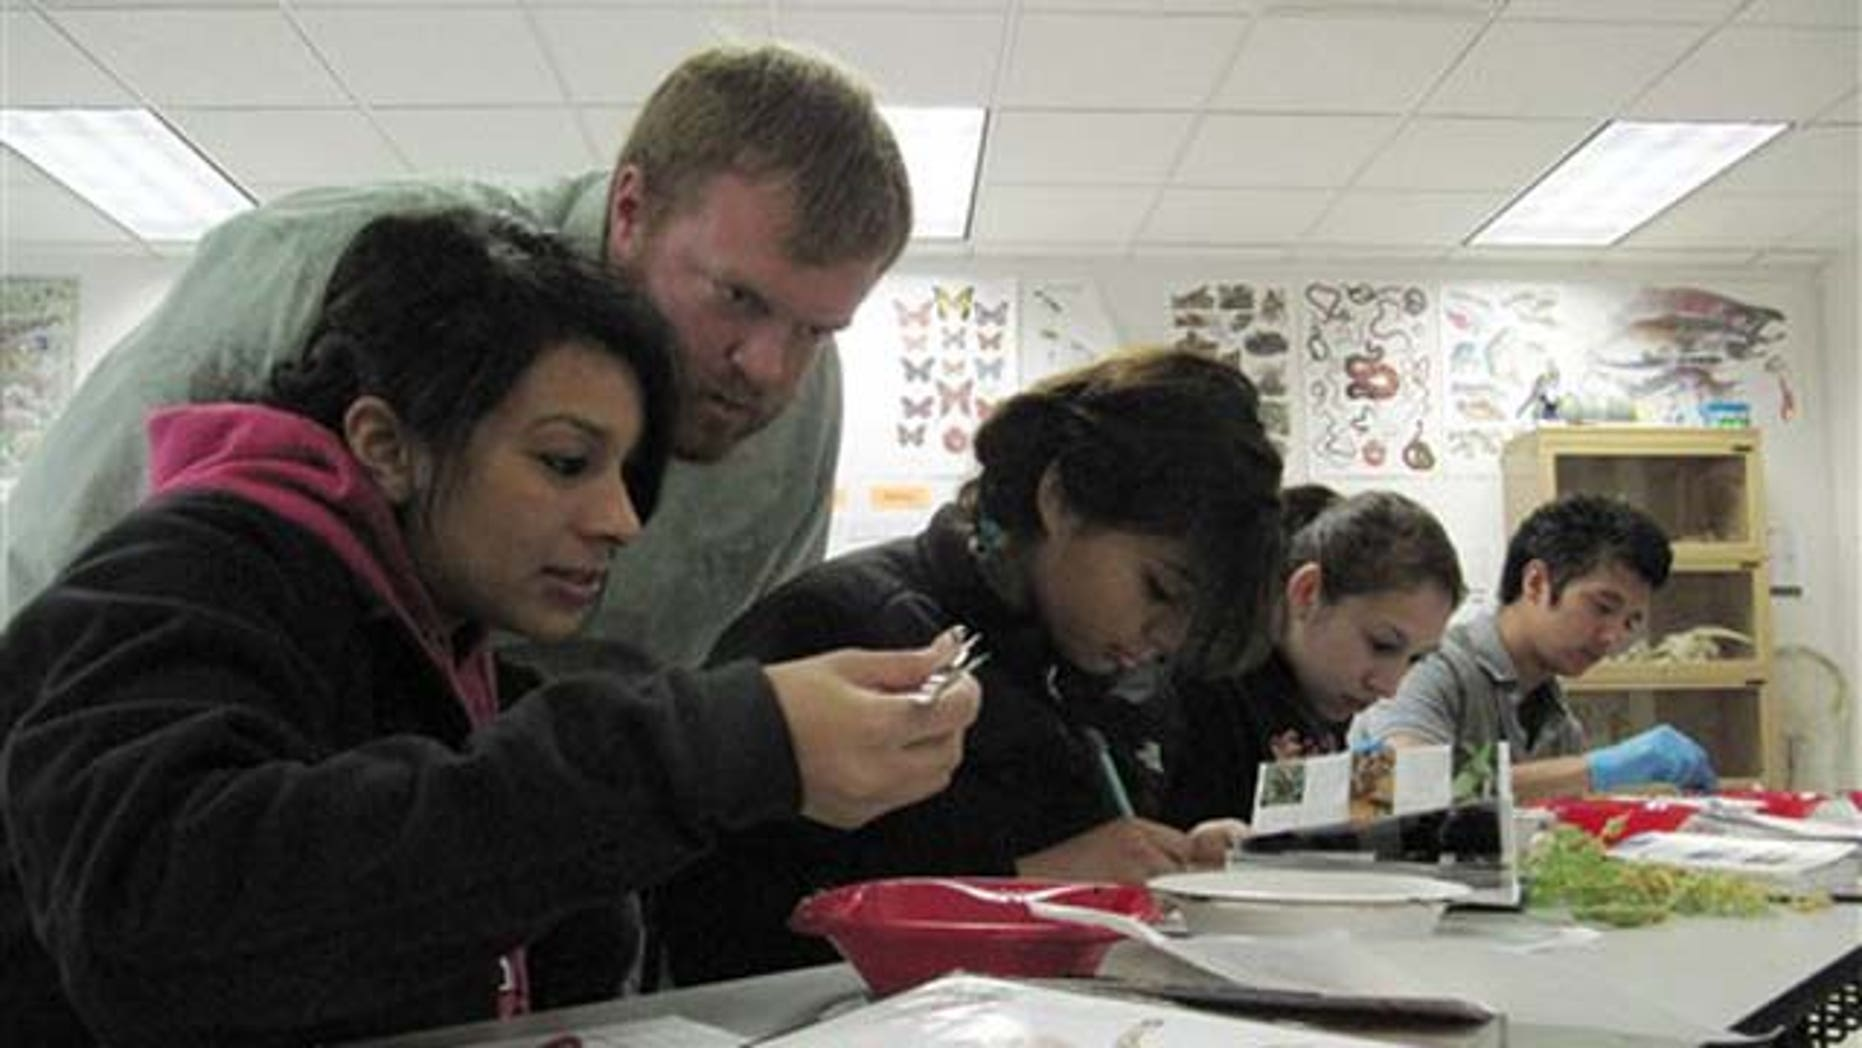 Xenia Valdovinos, left, and her teacher, Eric Schmidt, examine insects found outside Bridgeport High School in Bridgeport, Wash. on Thursday, May 5, 2011. Schmidt teaches a college biology course at the high school, which is in the running to have President Barack Obama deliver the commencement address. (AP Photo/Shannon Dininny)